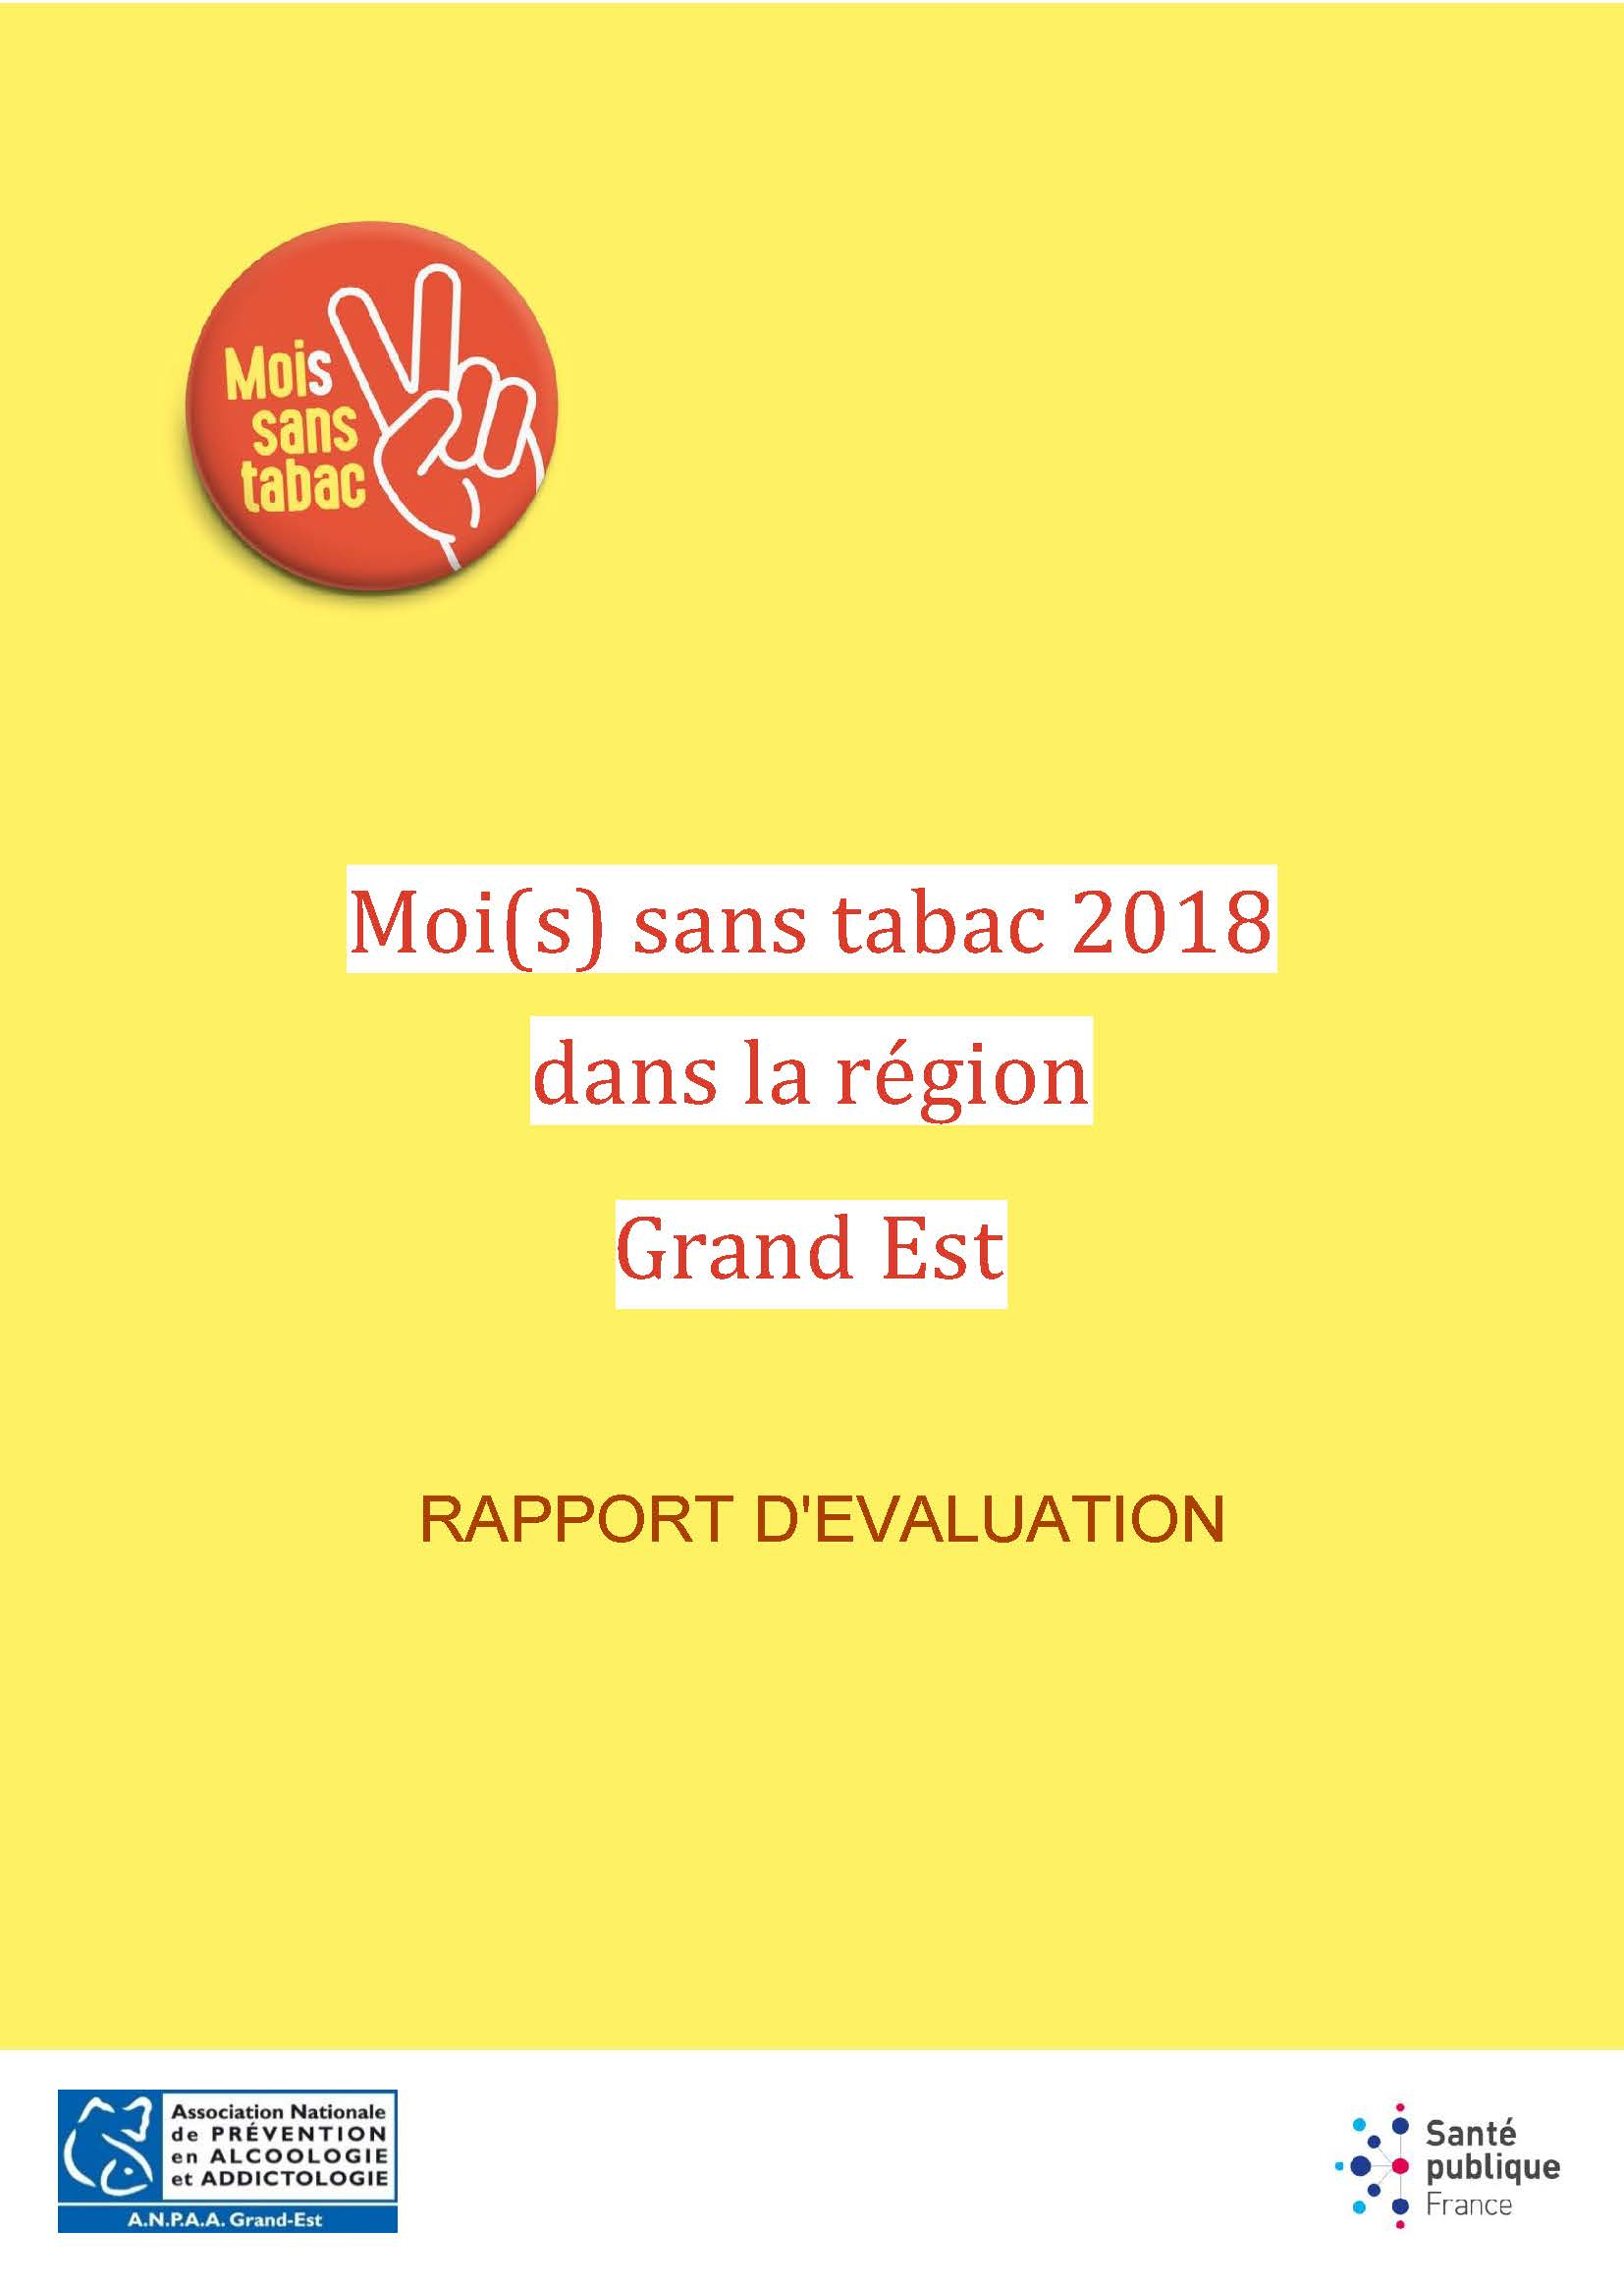 MoST_2018_Rapport_evaluation Grand Est.